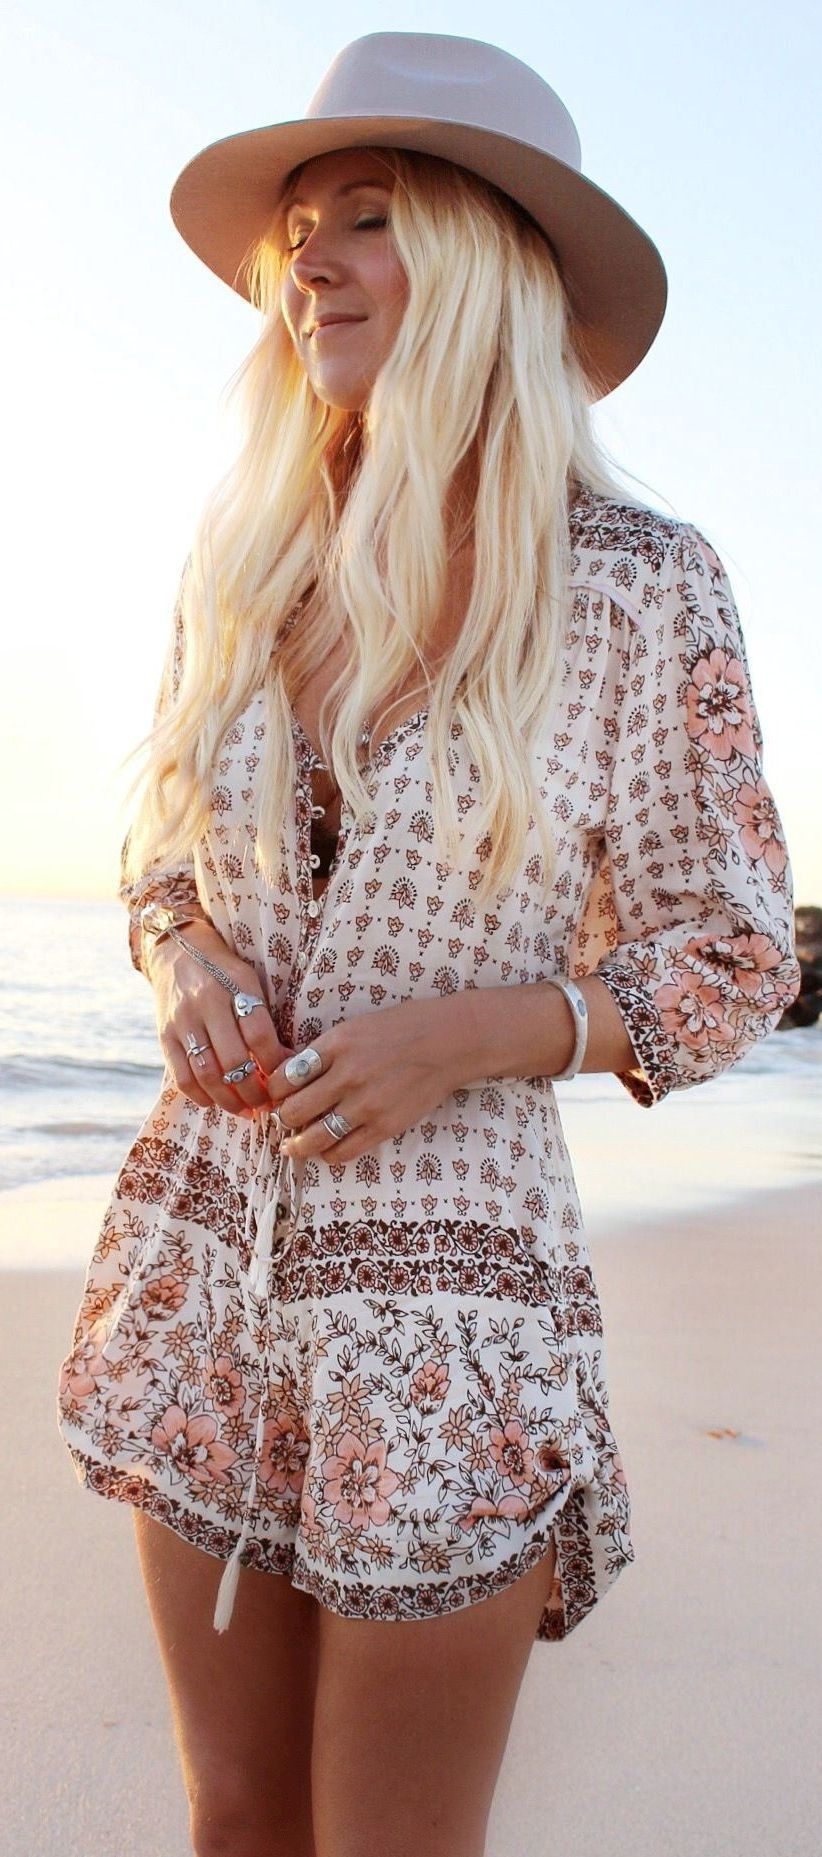 Bohemian Clothes Boho Style Clothing Cover Up Beach Clothes Hippie Romper BLACK Playsuit Summer Outfit Festival Clothing Women